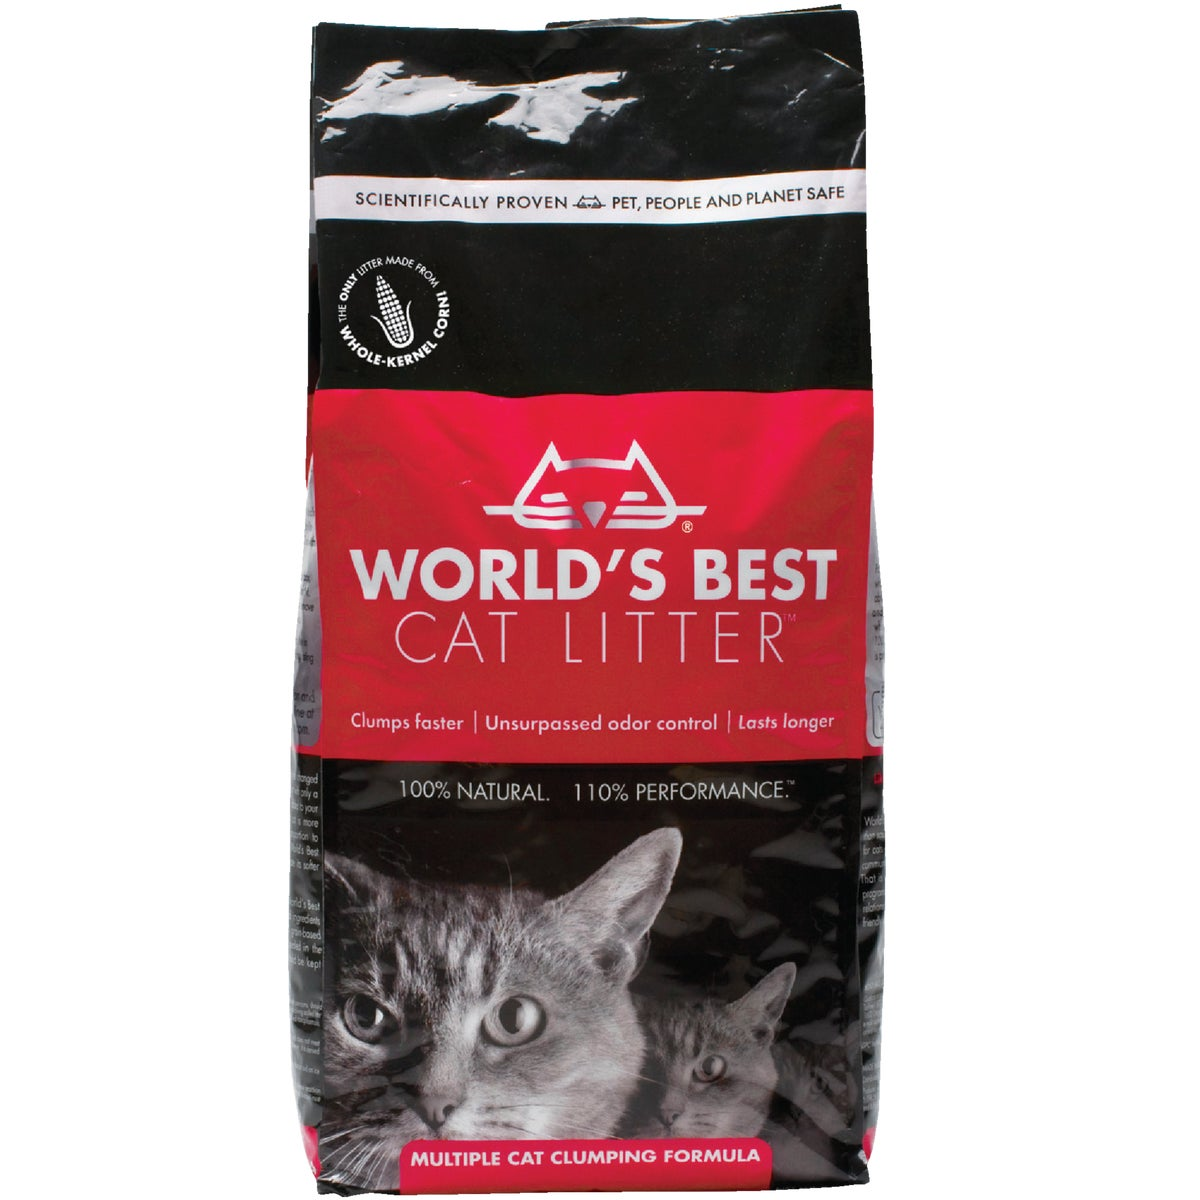 7LB WRLD BEST CAT LITTER - 8091 by Kent Feeds Inc